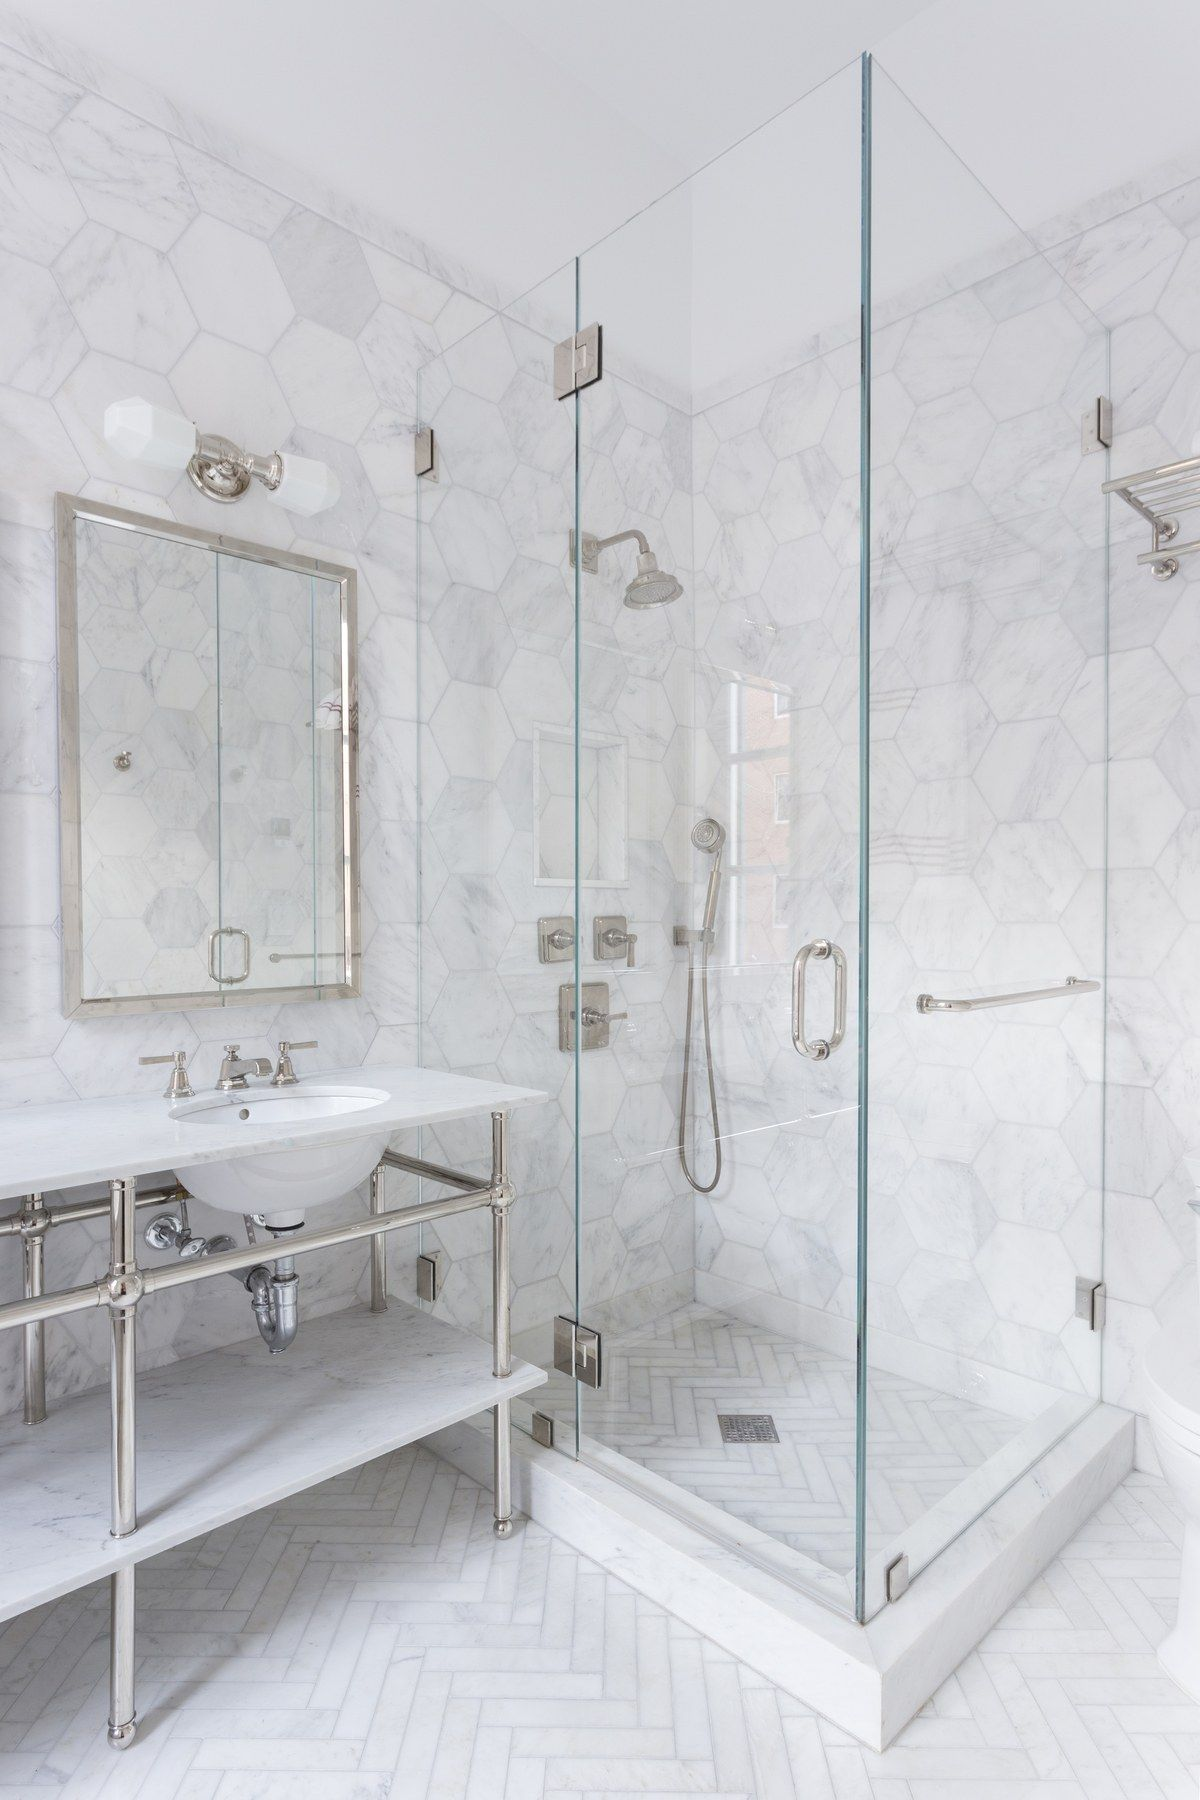 See How Designer Drew McGukin Transforms An Outdated Bathroom Into A  Luxurious Dream Destination